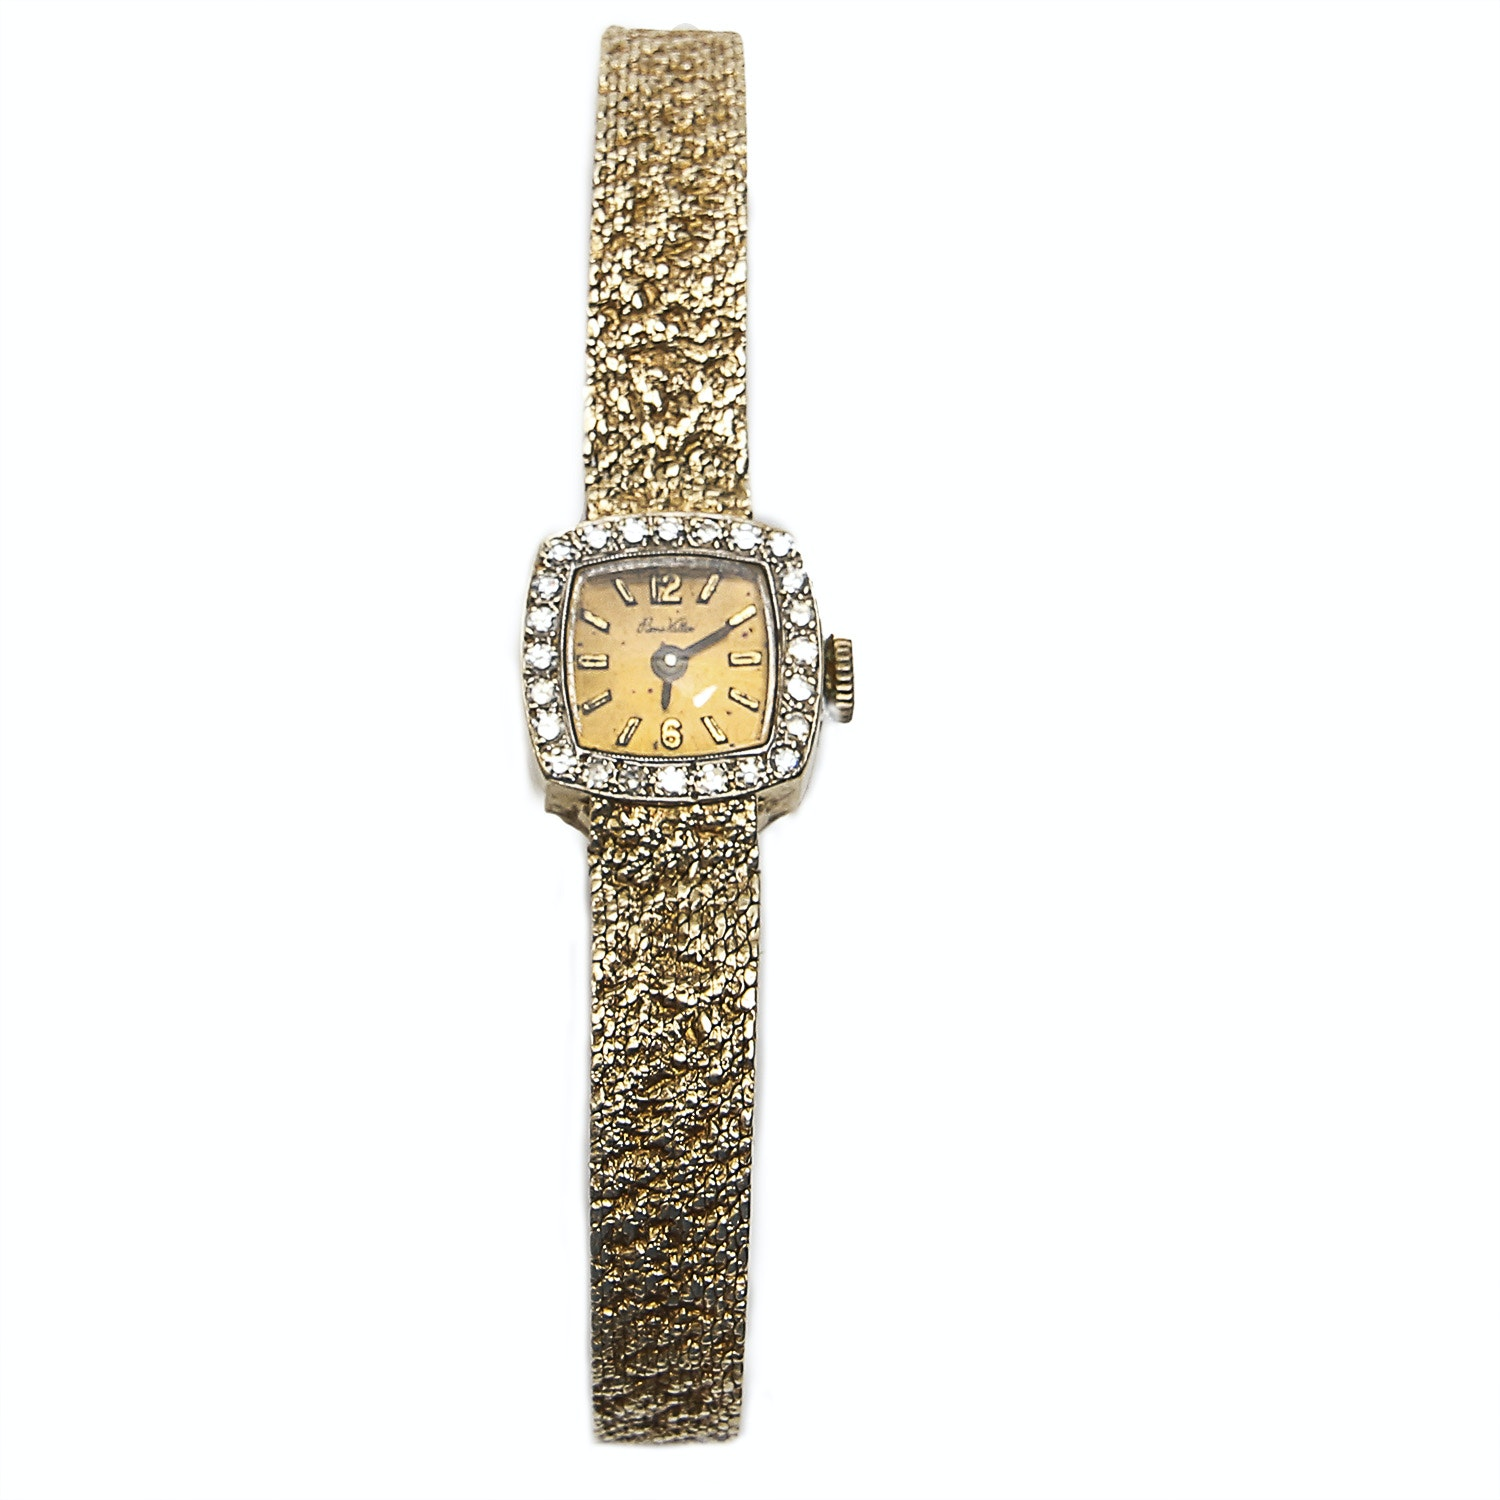 Vintage Pierre Vallee 14K Gold Diamond Pave Watch